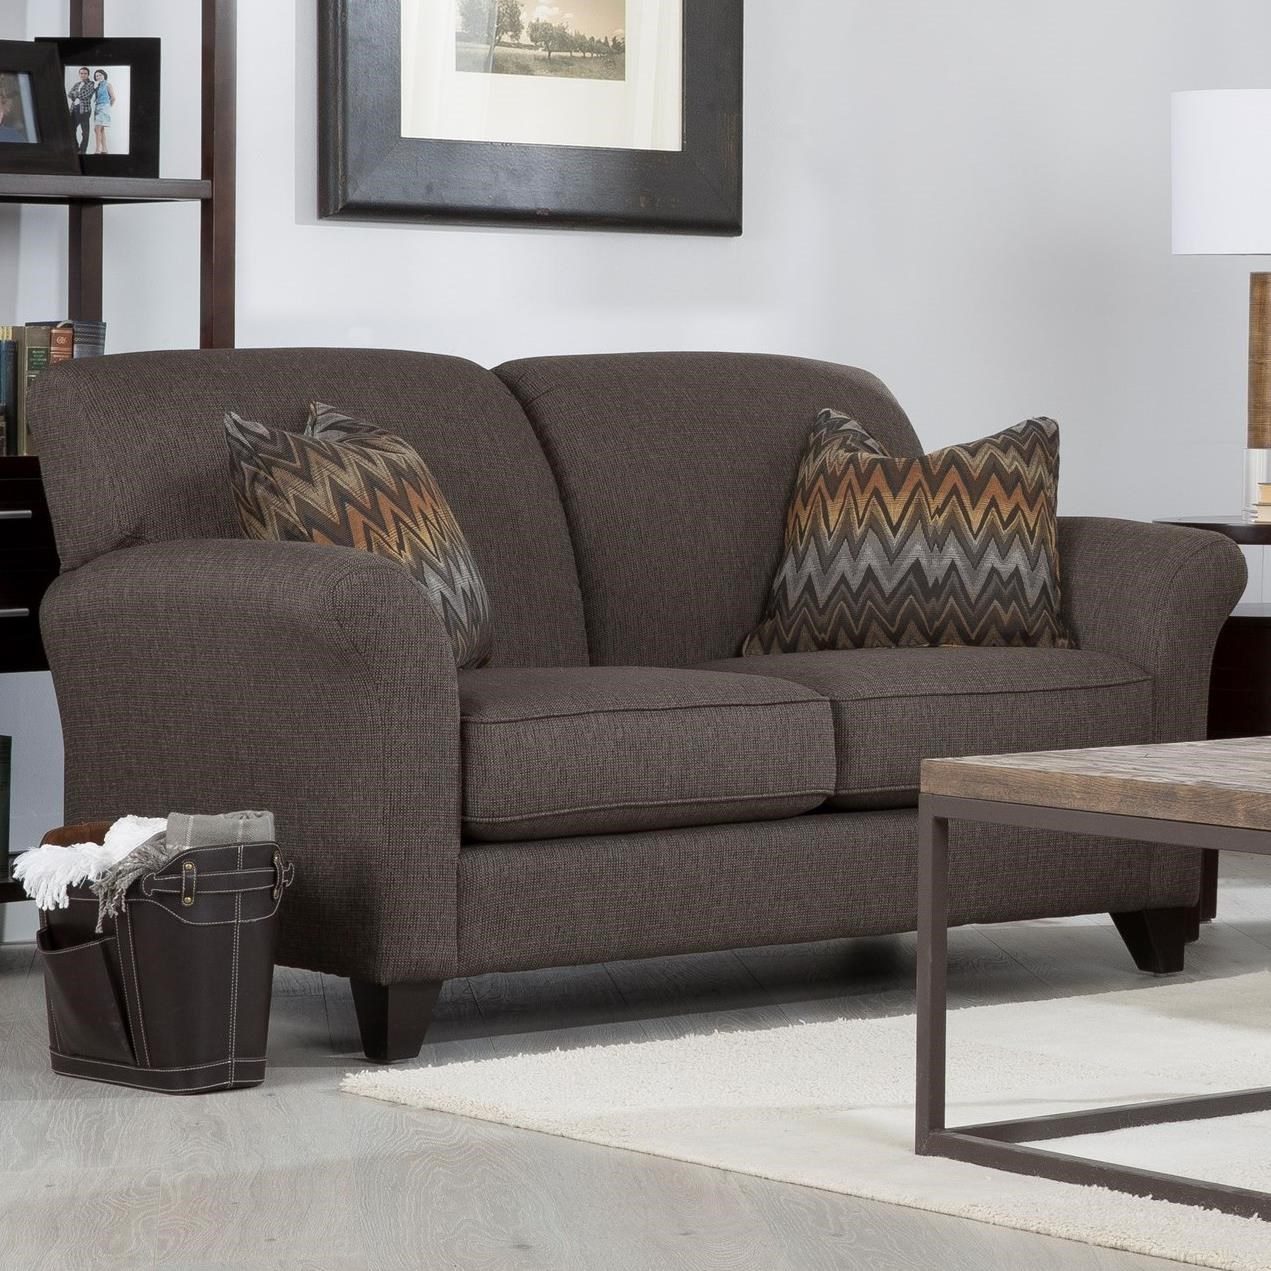 2263 Loveseat by Decor-Rest at Reid's Furniture